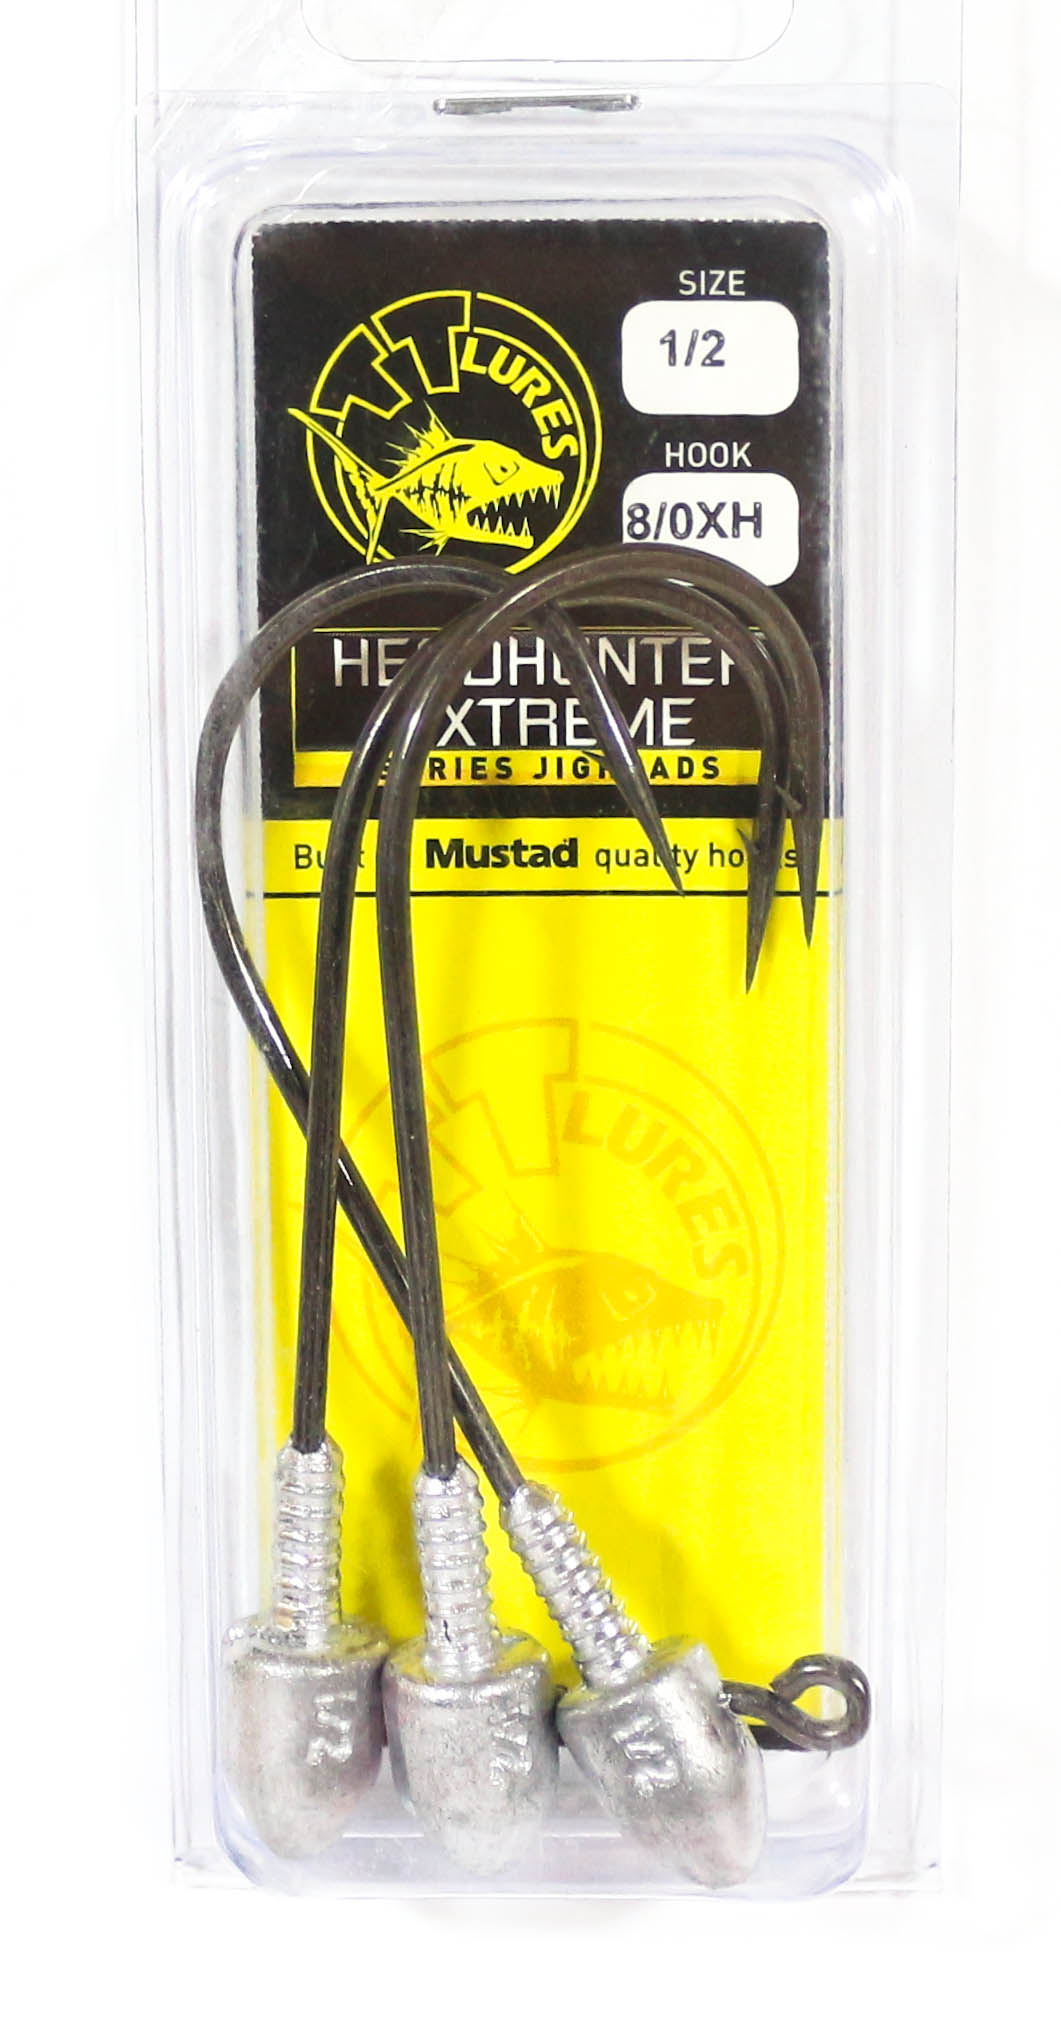 Tackle Tactics TT Head Hunter Extreme Jig Head 1/2 oz 8/0 XH 3 per pack (1890)